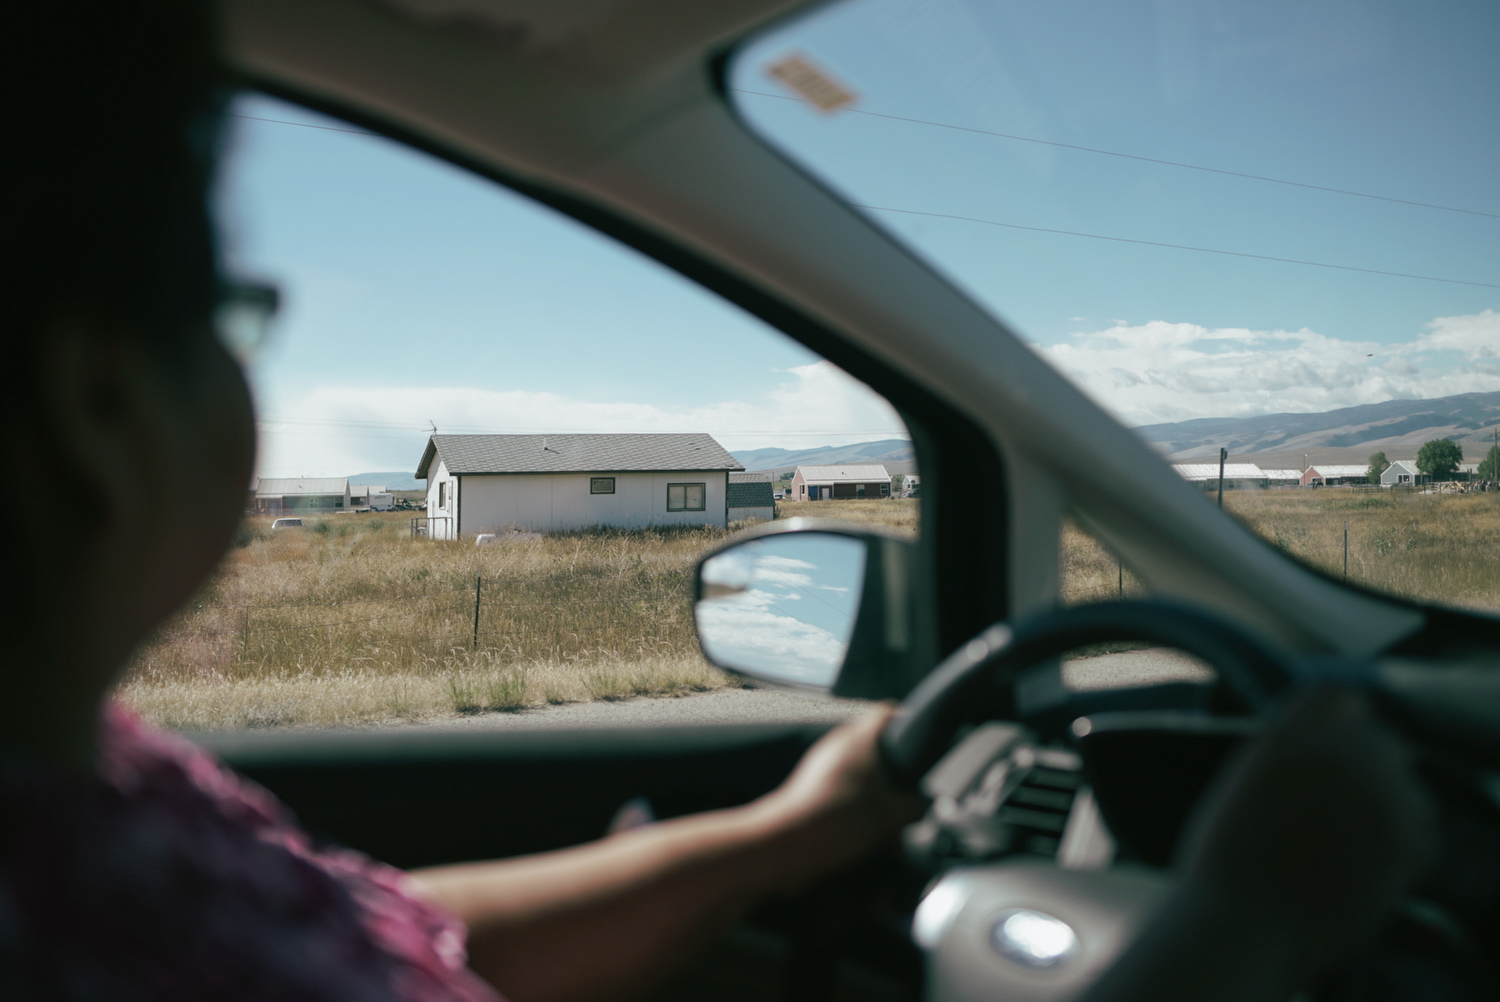 Elsie drives on the reservation, pointing out houses where she or her family members used to live. Because Elsie is from the community she serves, she's better able to empathize with the challenges faced by the parents she works with, according to her boss, Kim Clemetson, who directs Wind River's Family Spirit home visiting program.